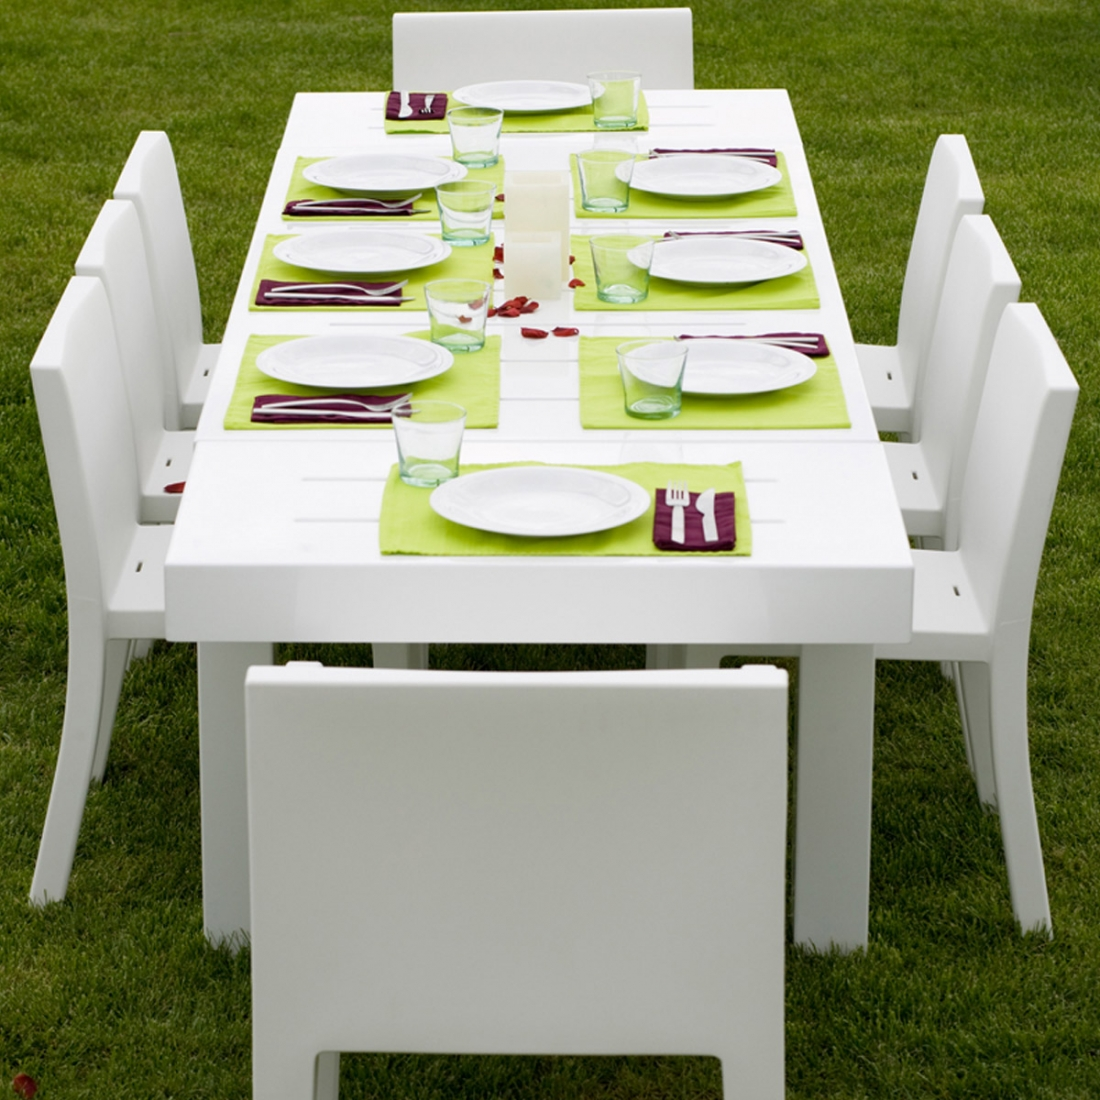 Table de jardin design 12 personnes jut par vondom for Table exterieur 2 personnes